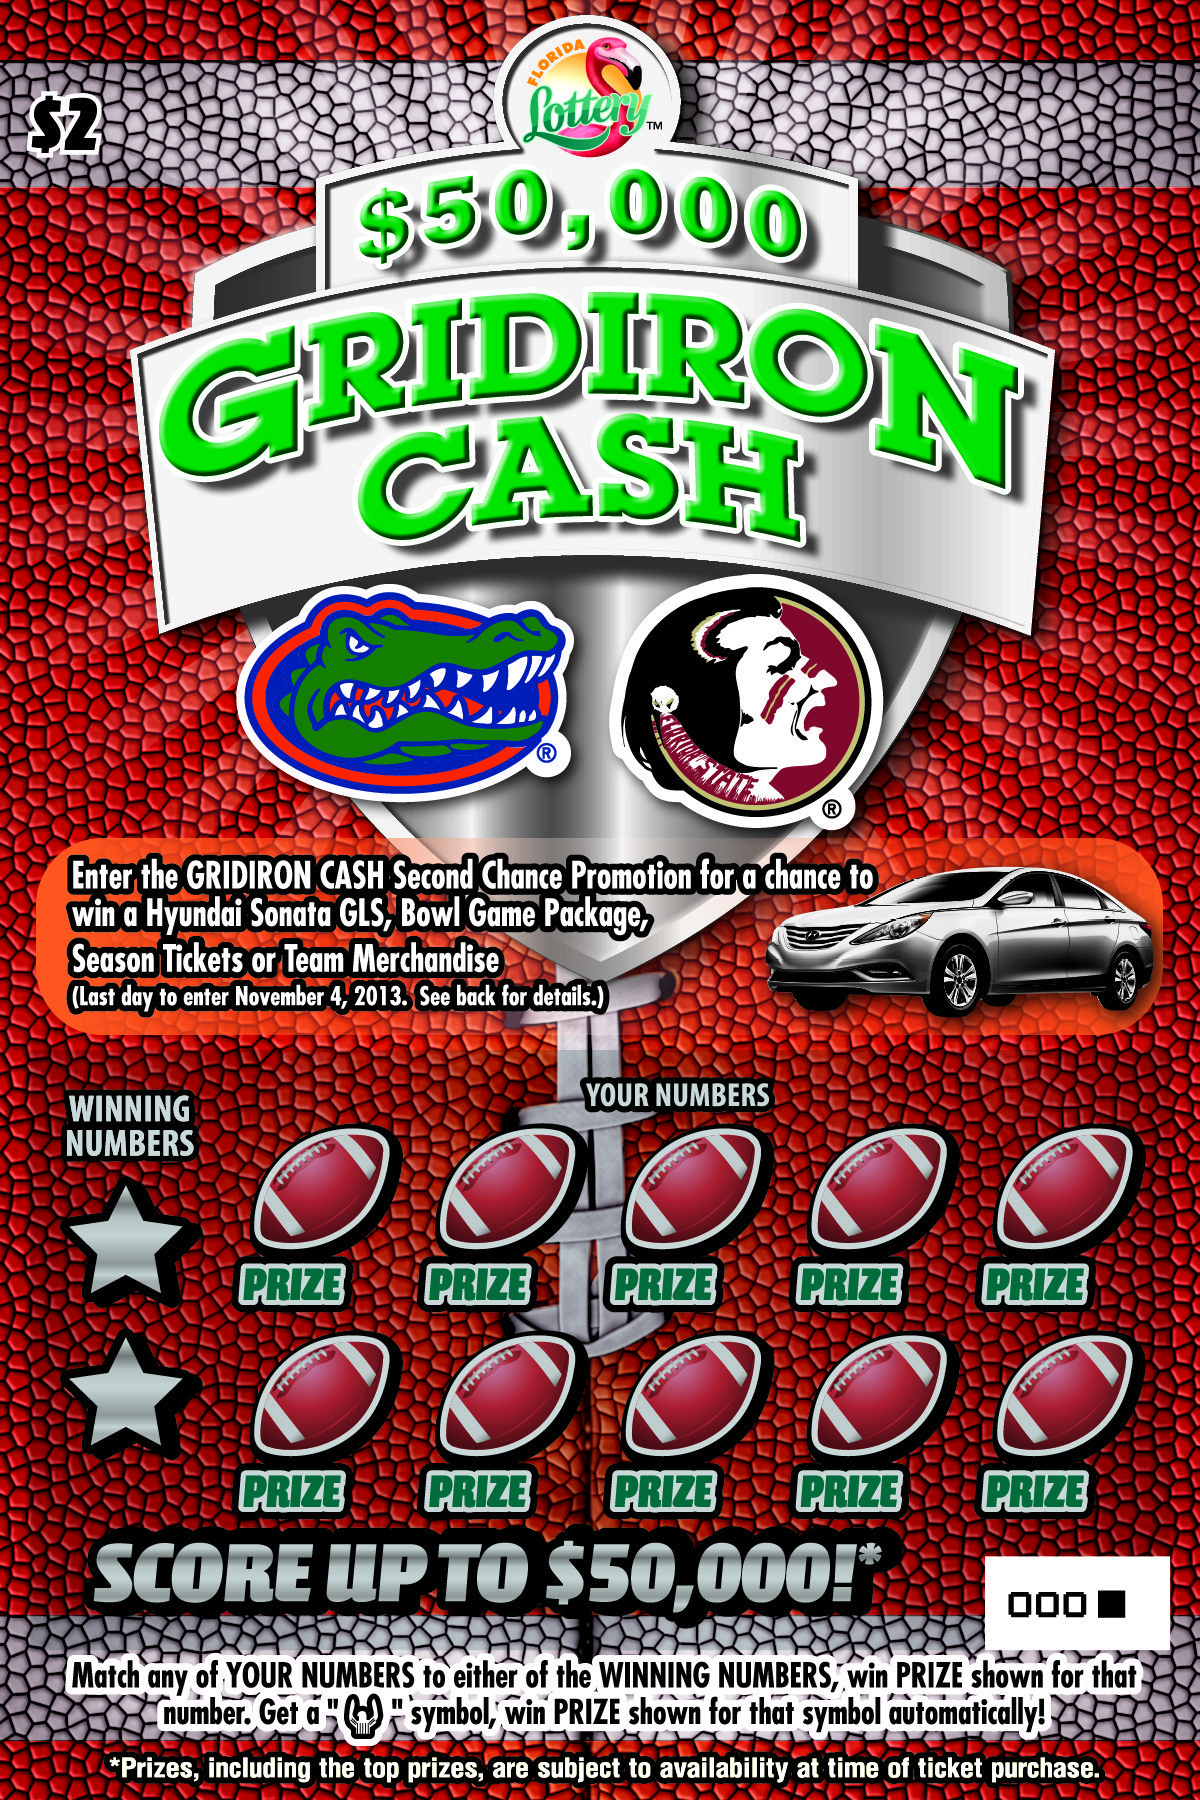 Scratch Off 92 Football Grounds Print: Florida Lottery Scratch-off Game